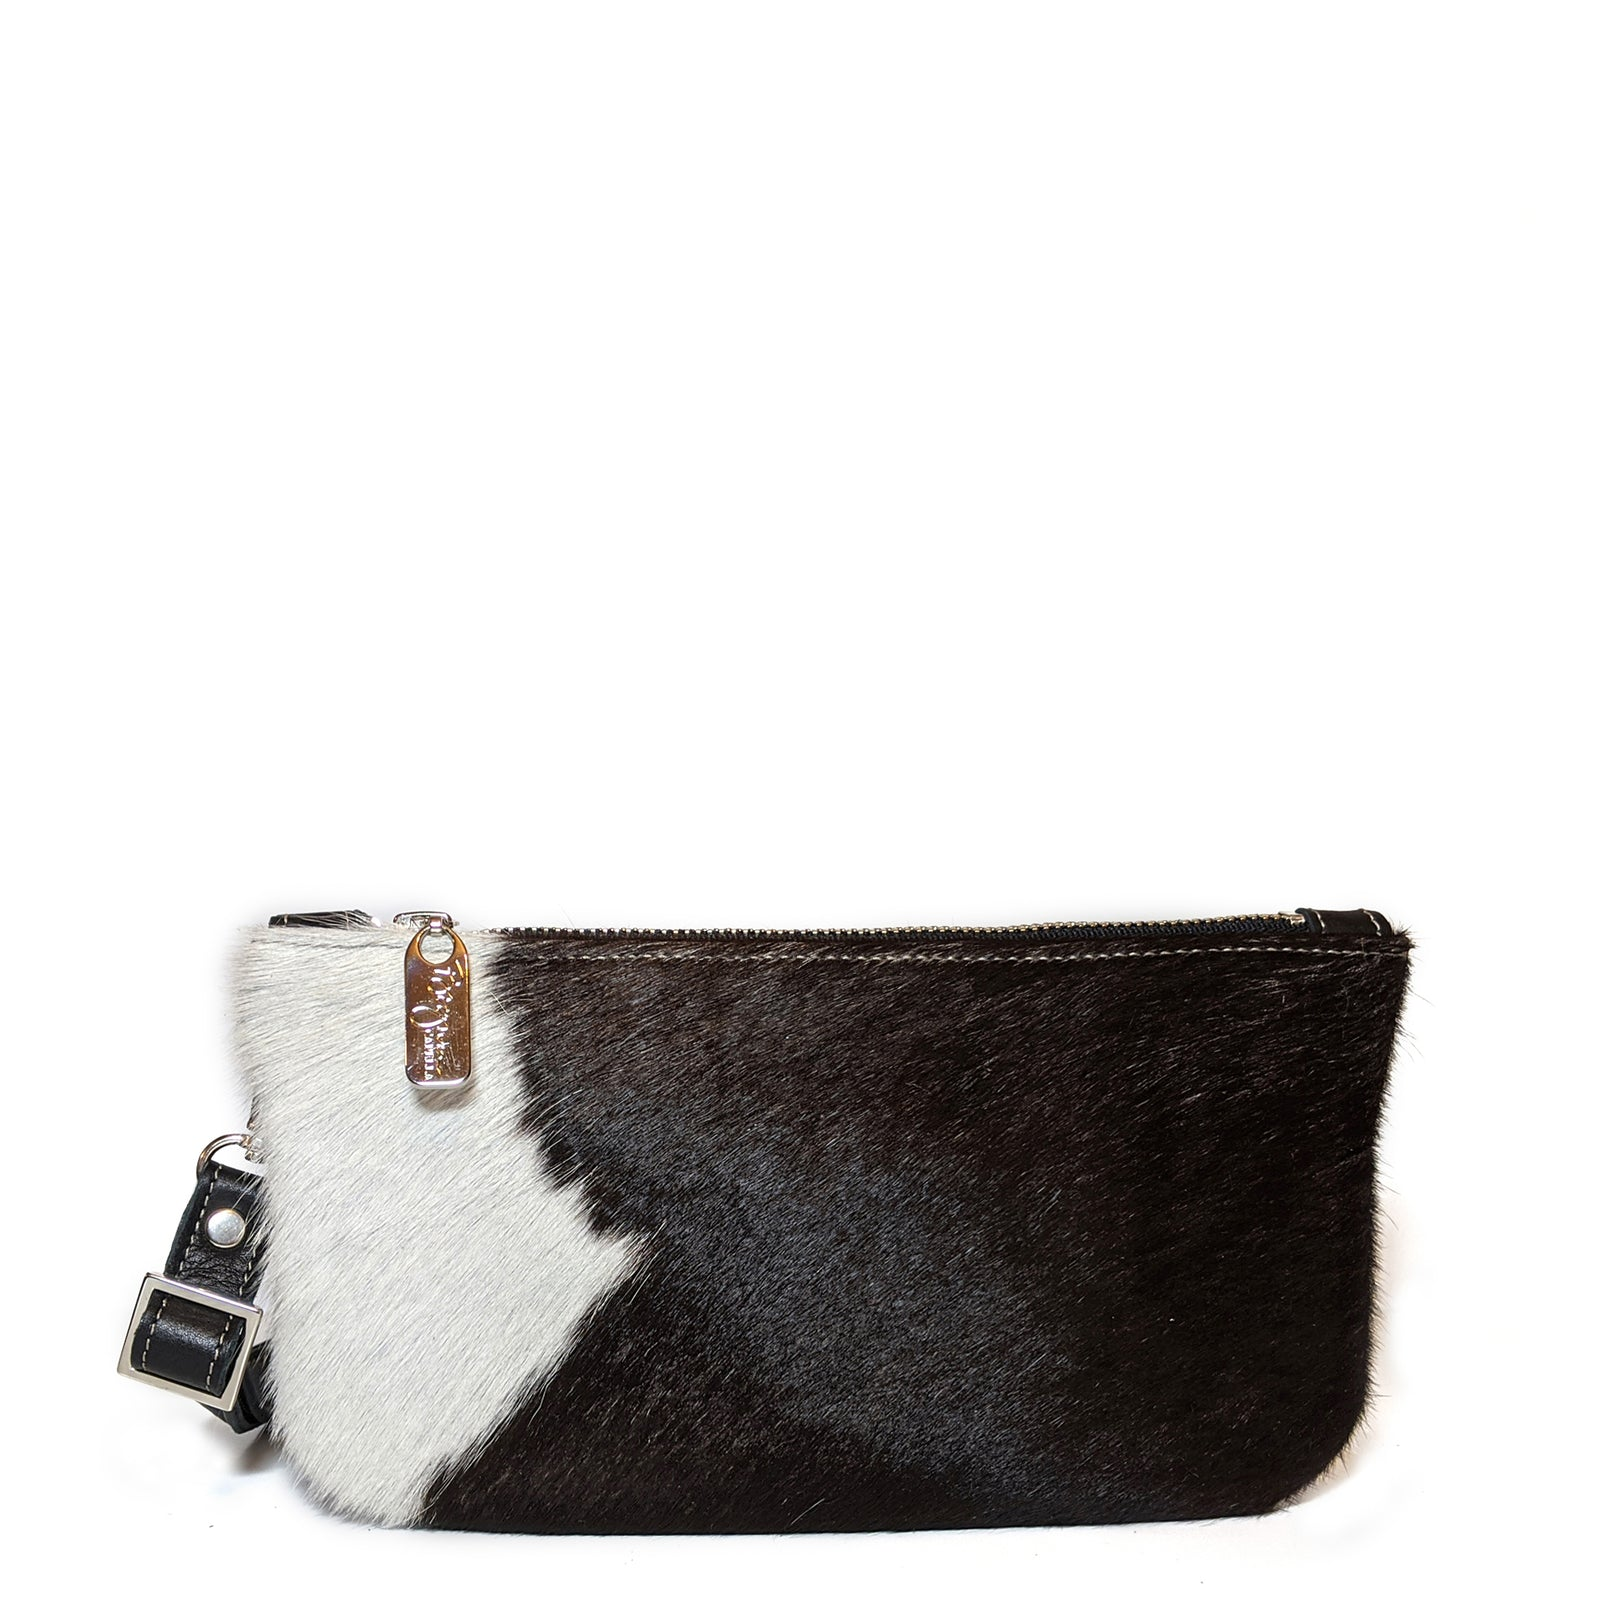 Black & White Hairon Mini Crossbody, Belt Bag, Made in the USA